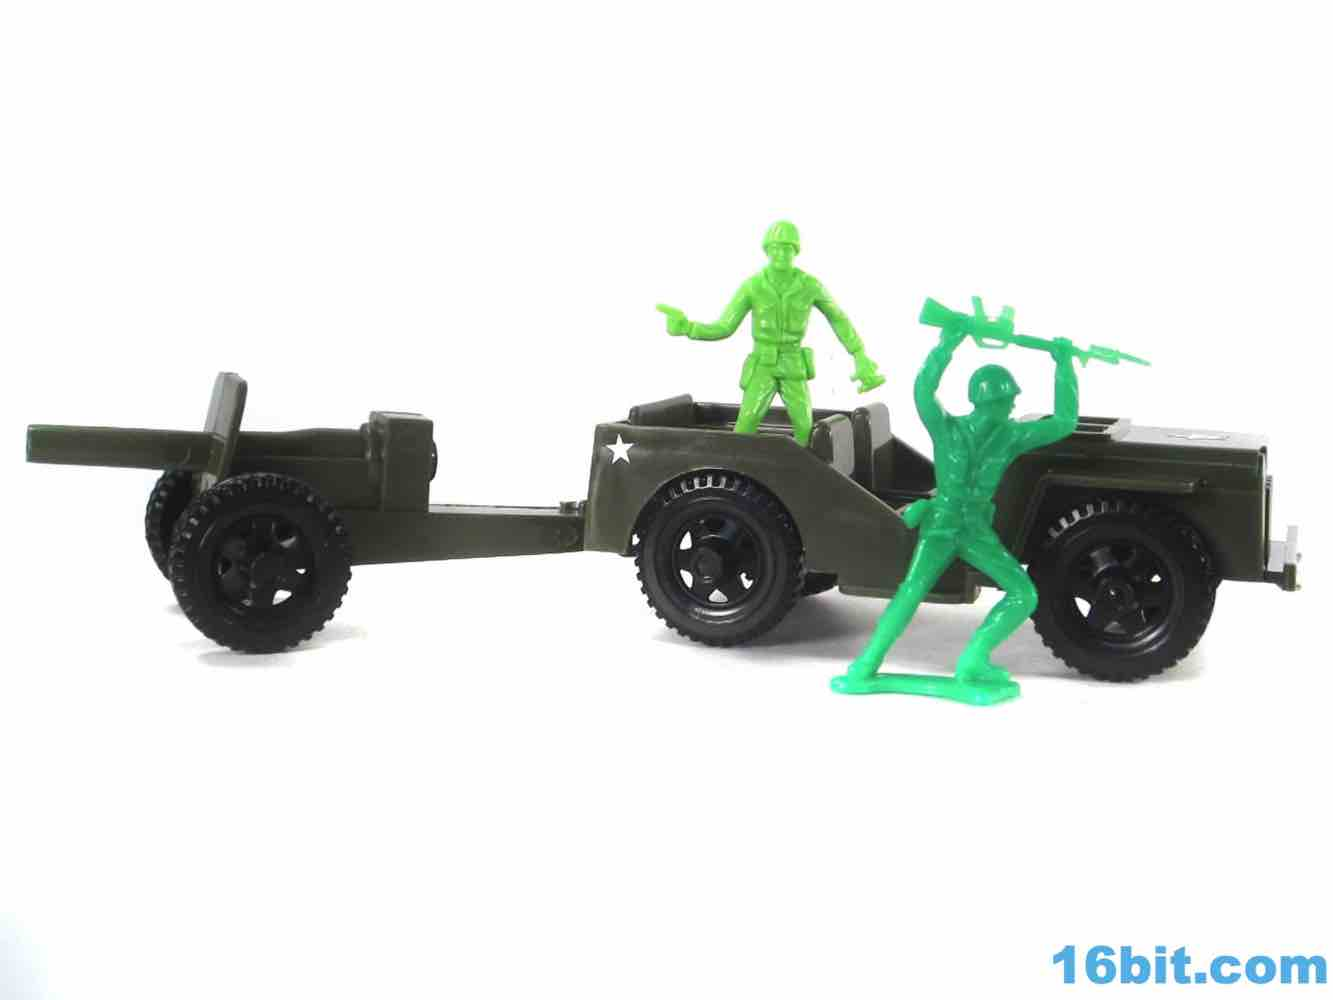 Toy Army Cars : Bit figure of the day review tim mee toys combat